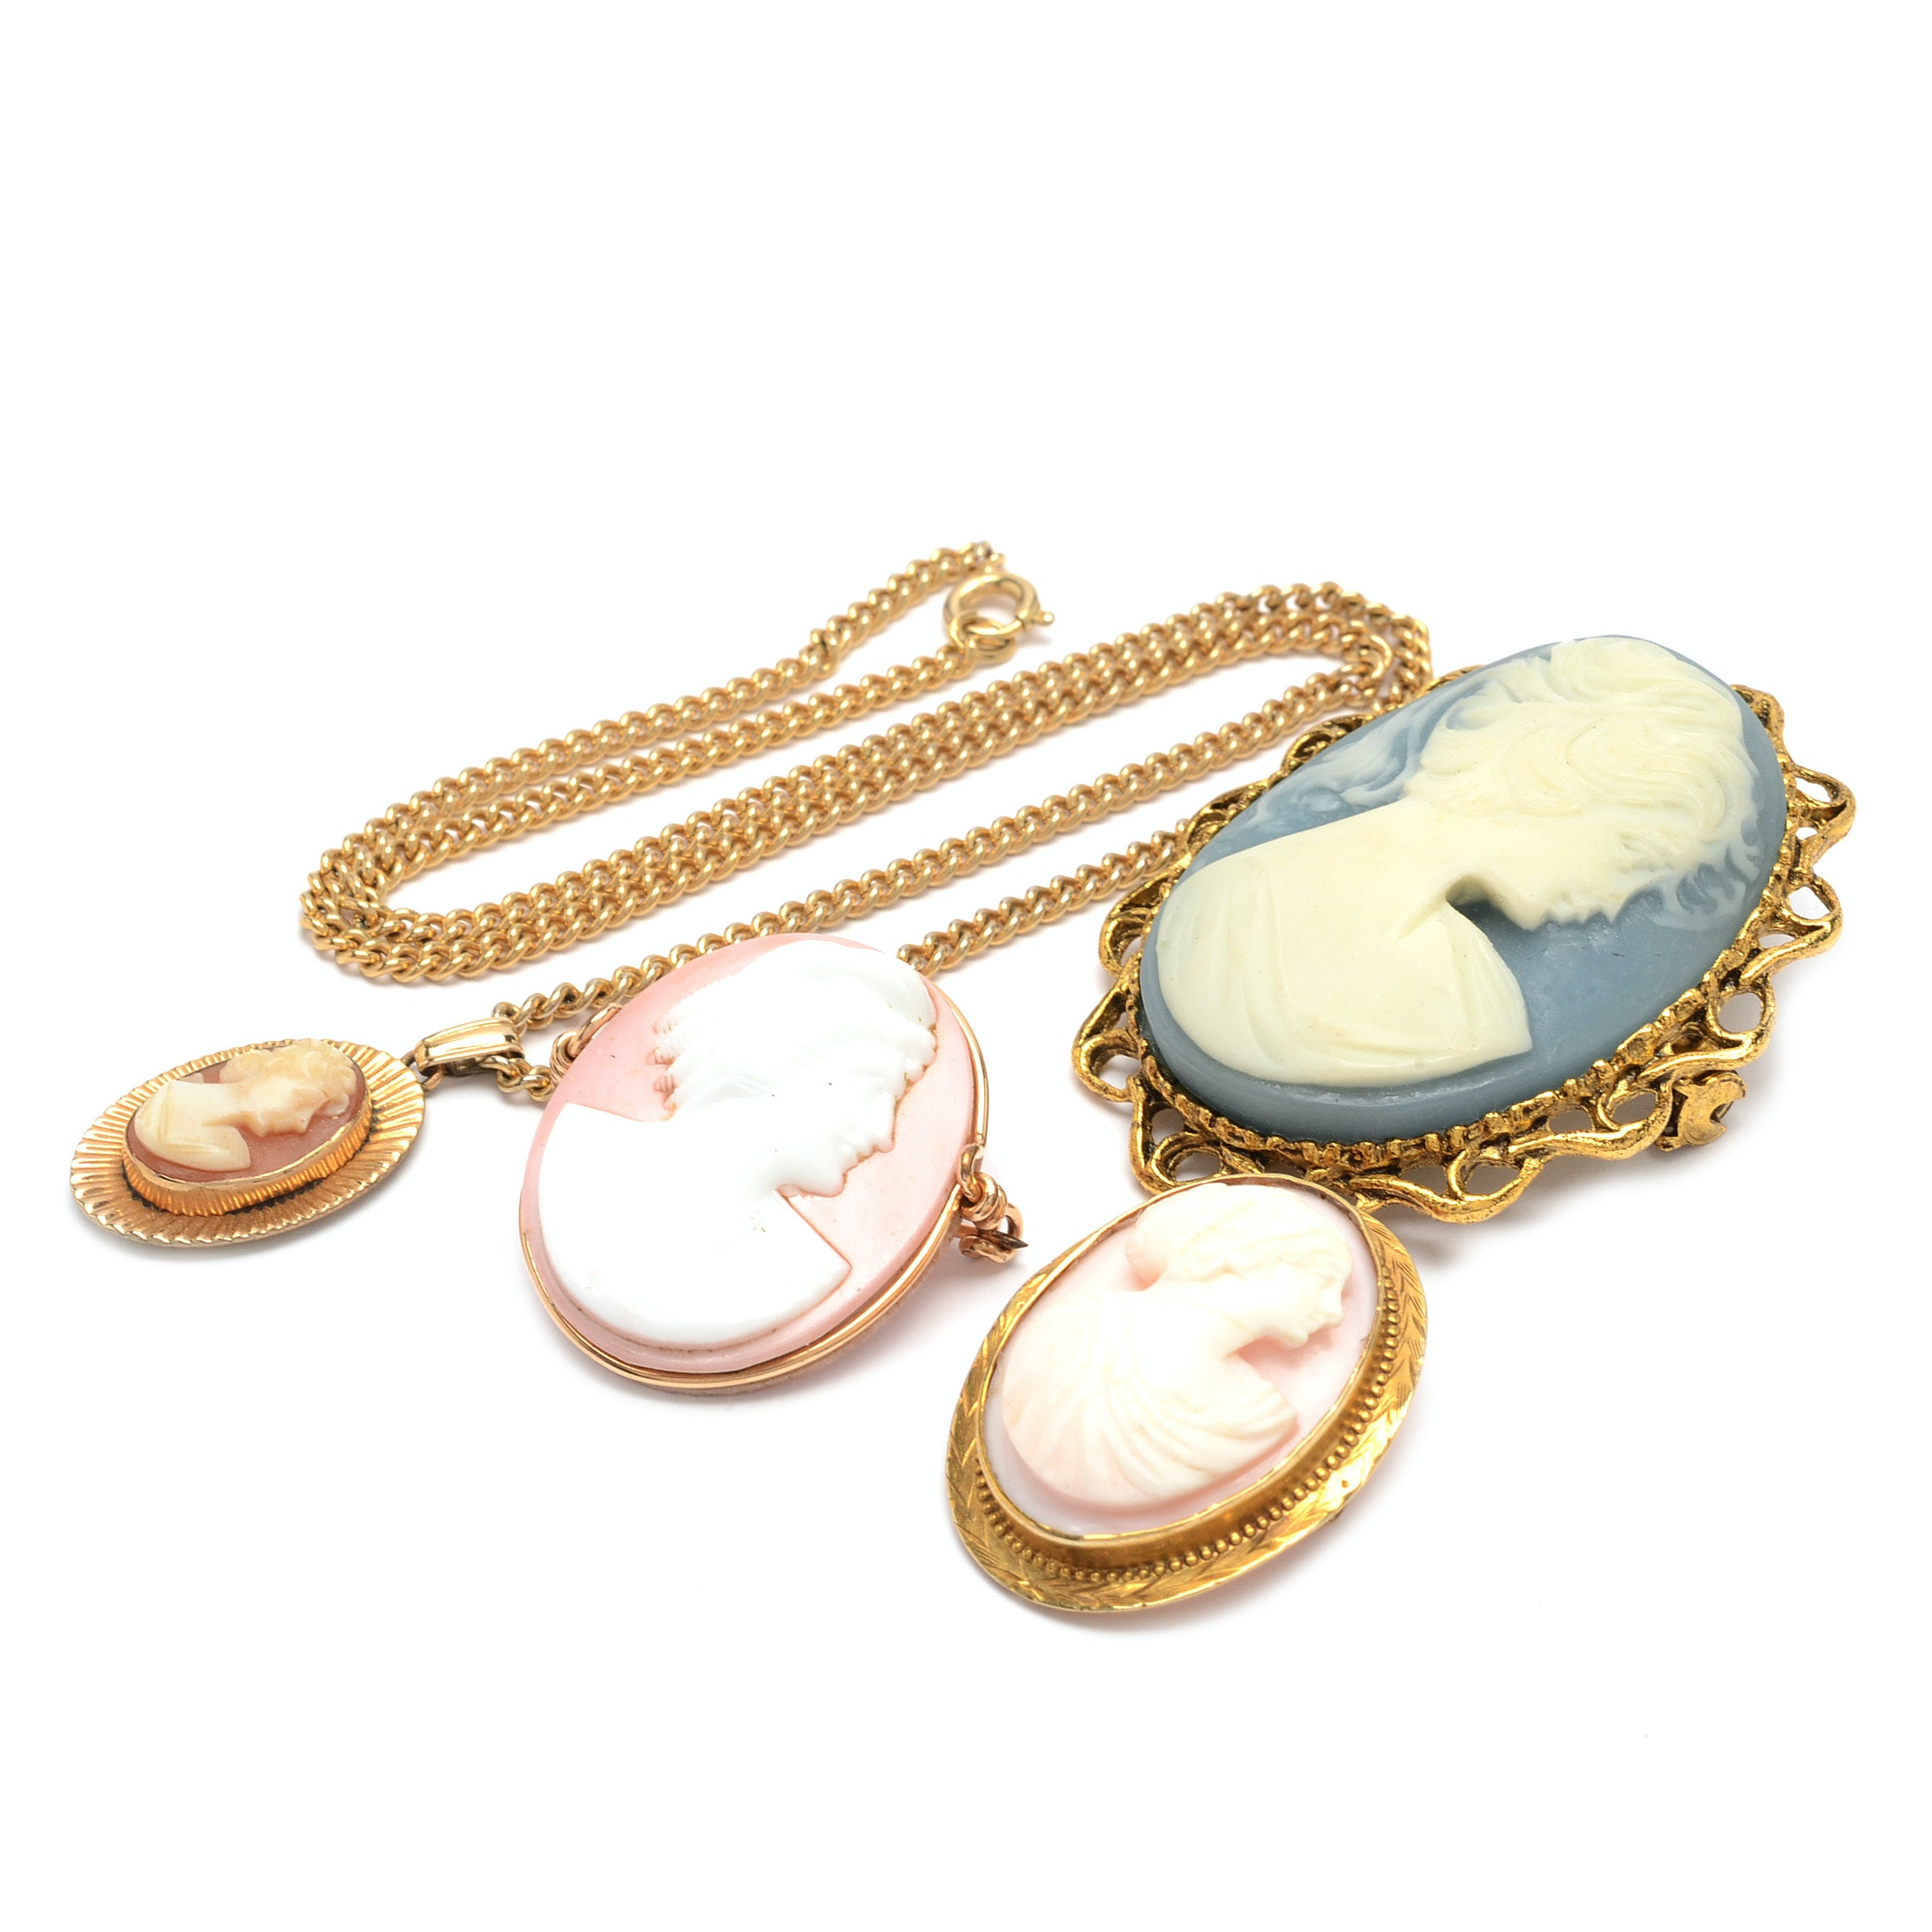 Cameo Brooches with a Van Dell Cameo Necklace